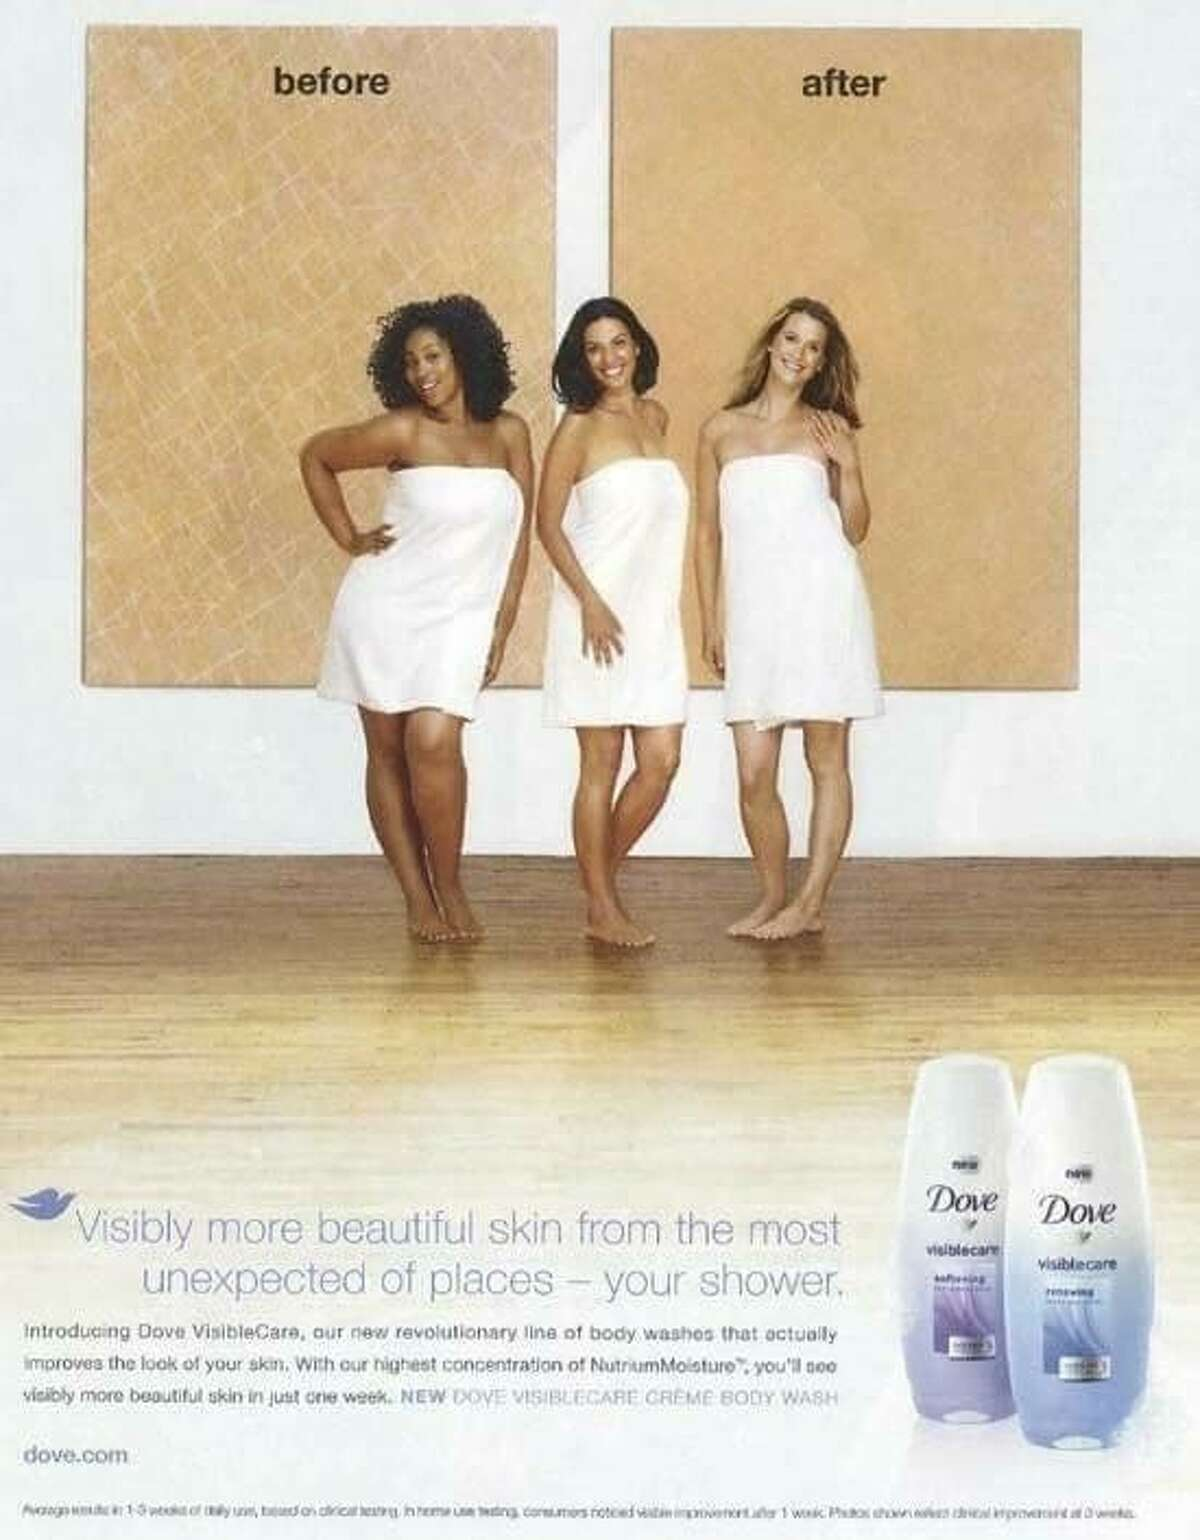 In 2011, Dove came under fire for this ad.